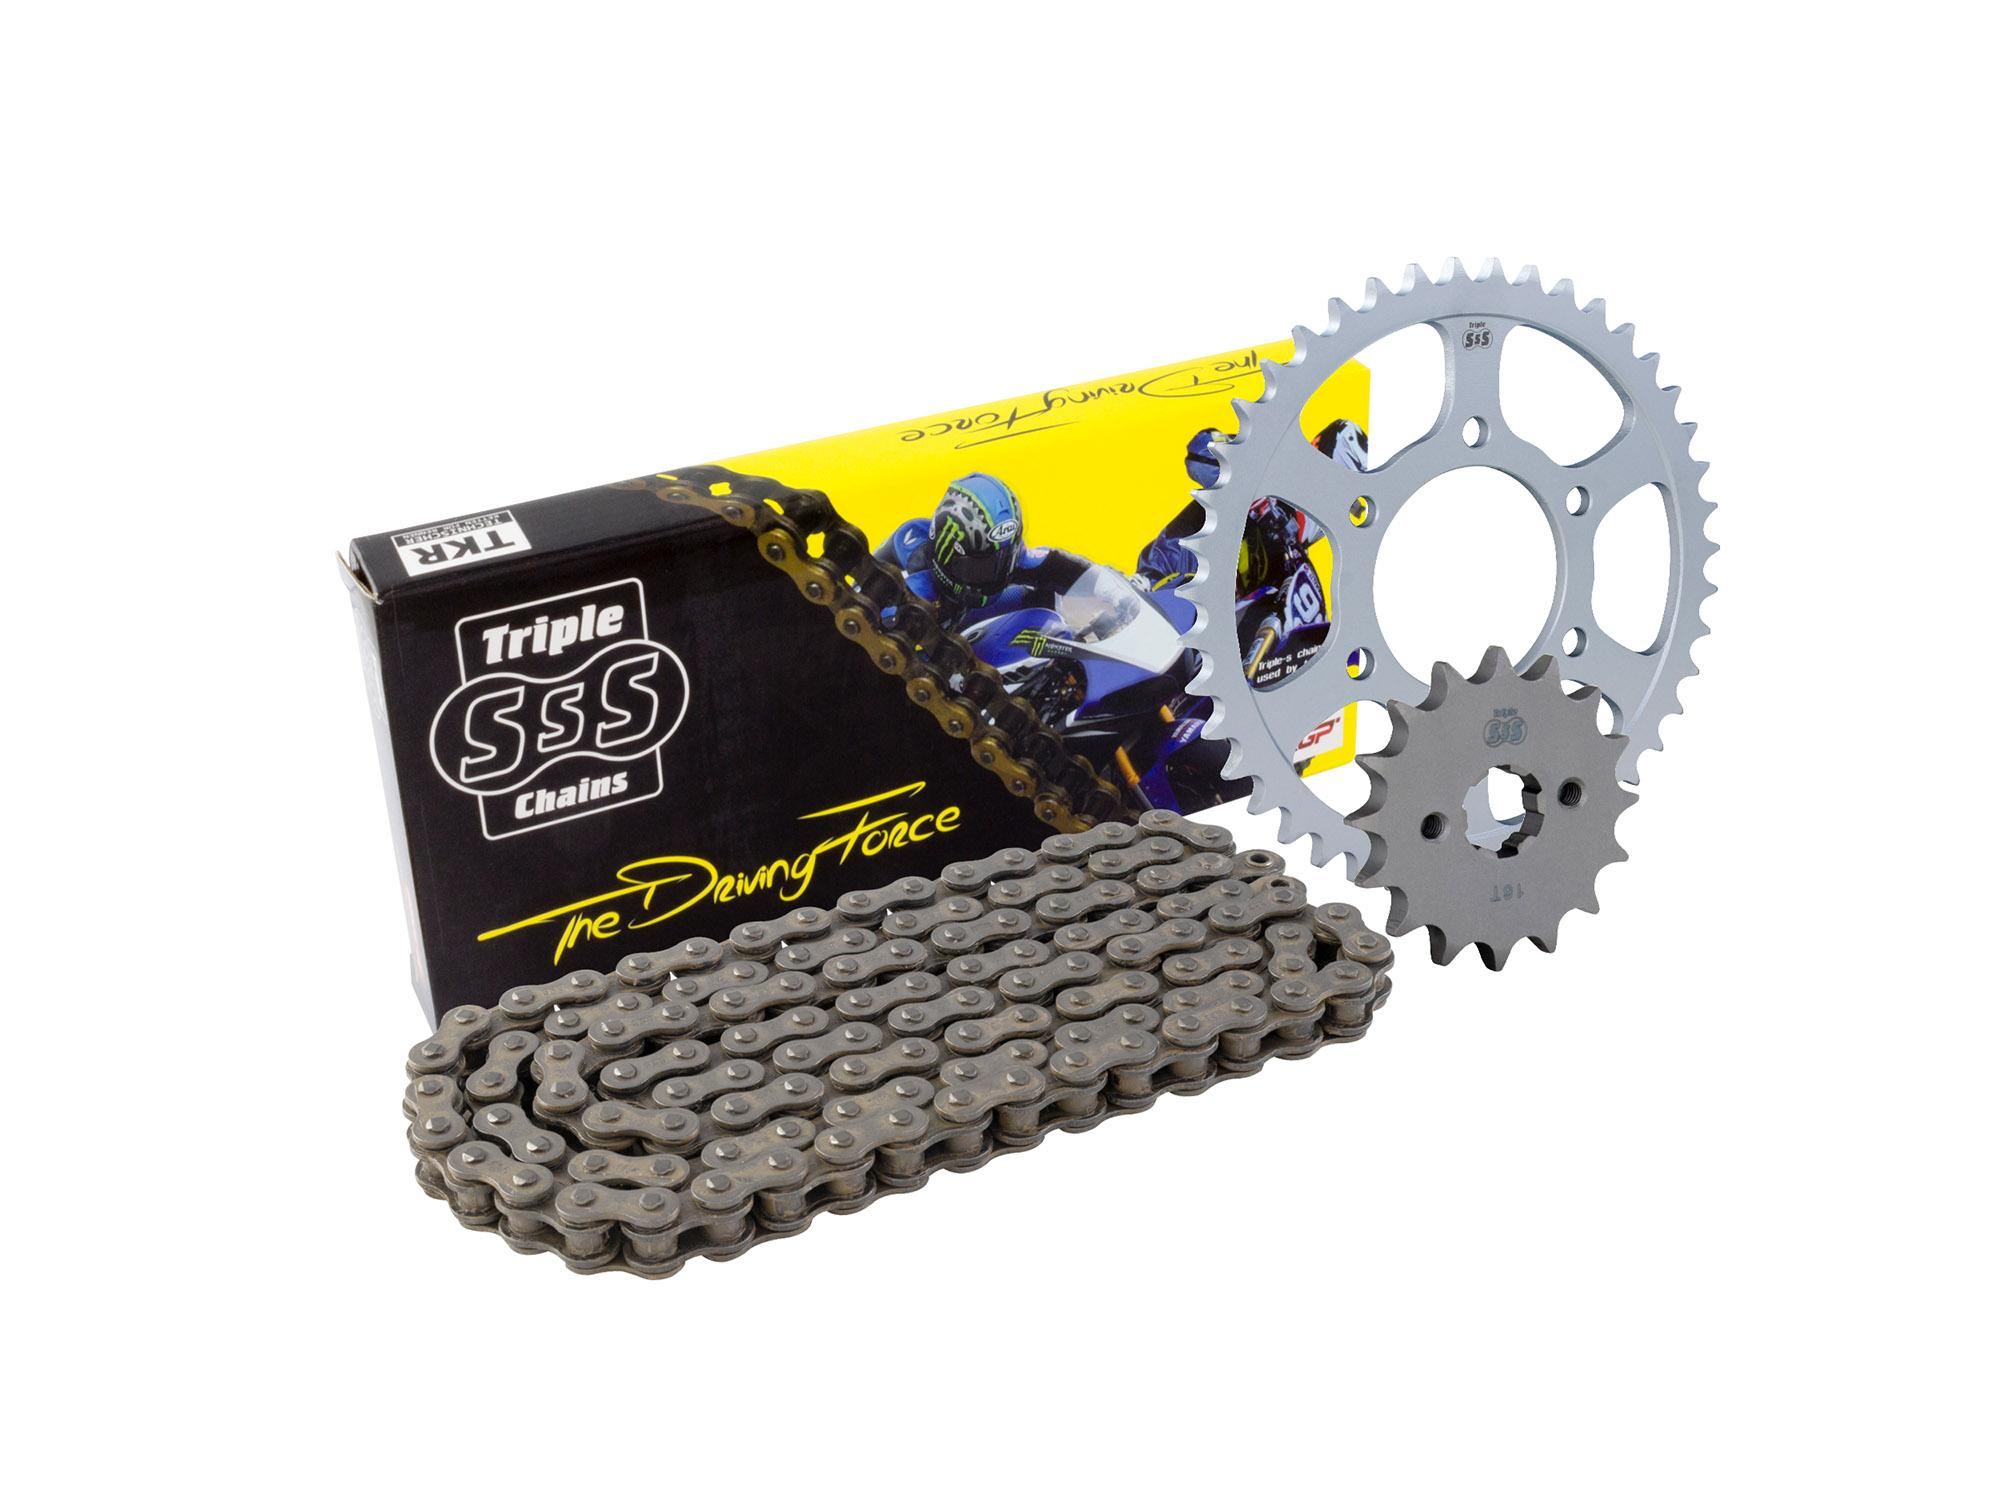 Kawasaki ZX-6R B1-B2/ K1 / M1 Ninja 03-04 Chain & Sprocket Kit: 15T Front, 40T Rear, HD O-Ring Black Chain 520H 108 Link